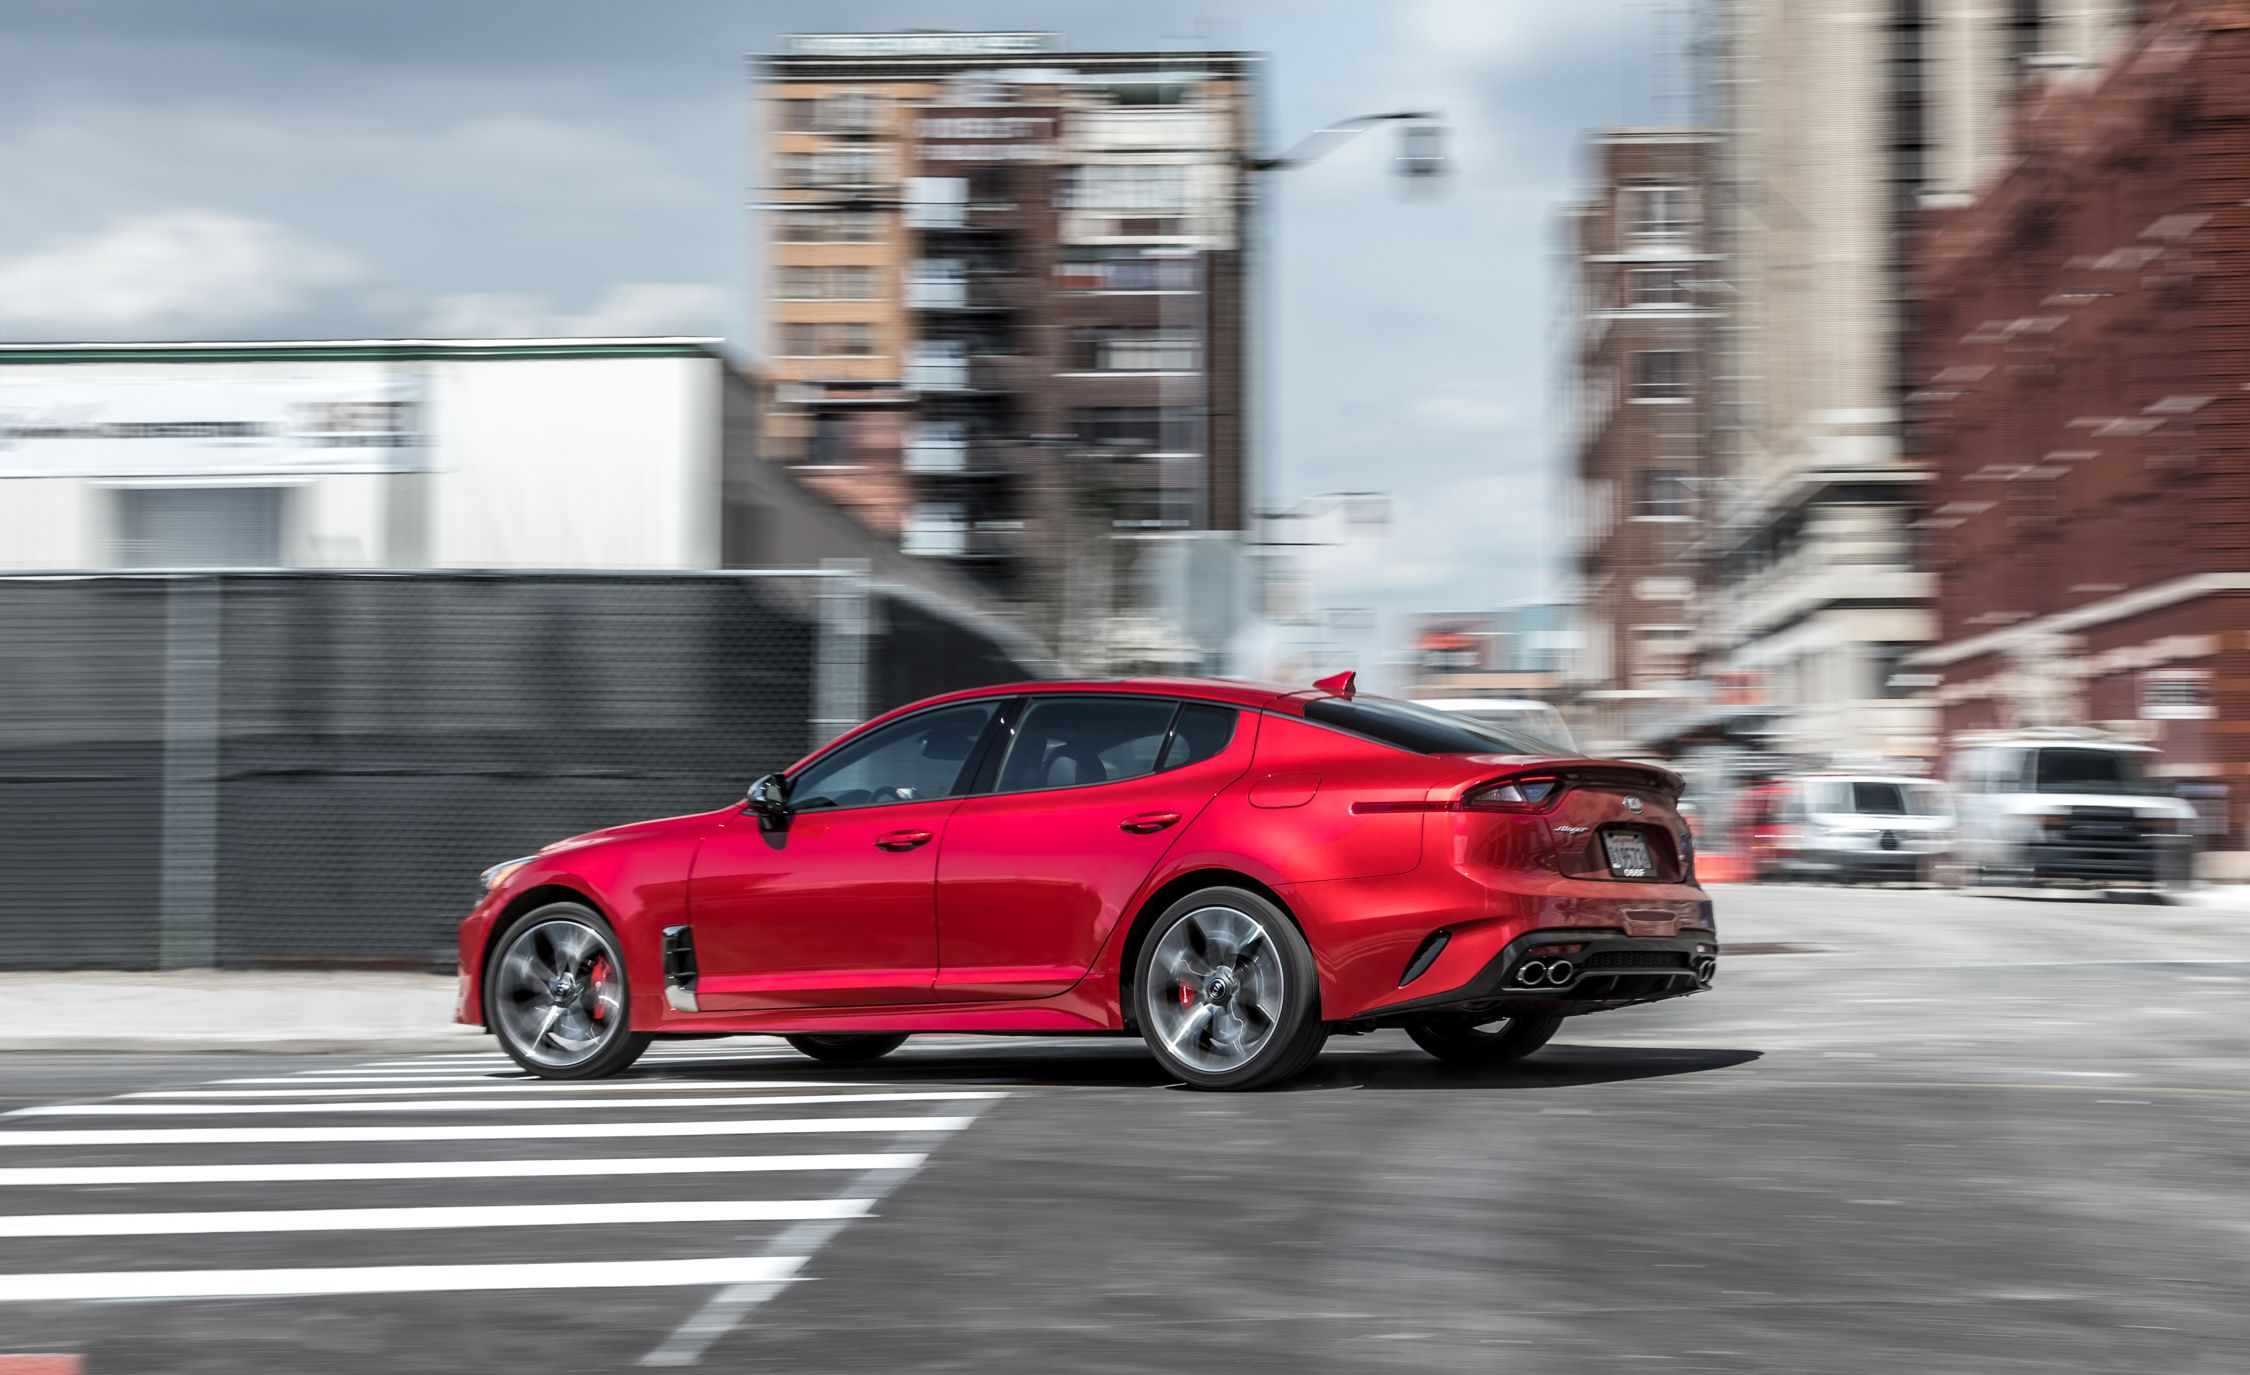 the detroit car stinger cars sizzles production vrg that of show kia auto sedan verge sports practical a thumb in vho is sea